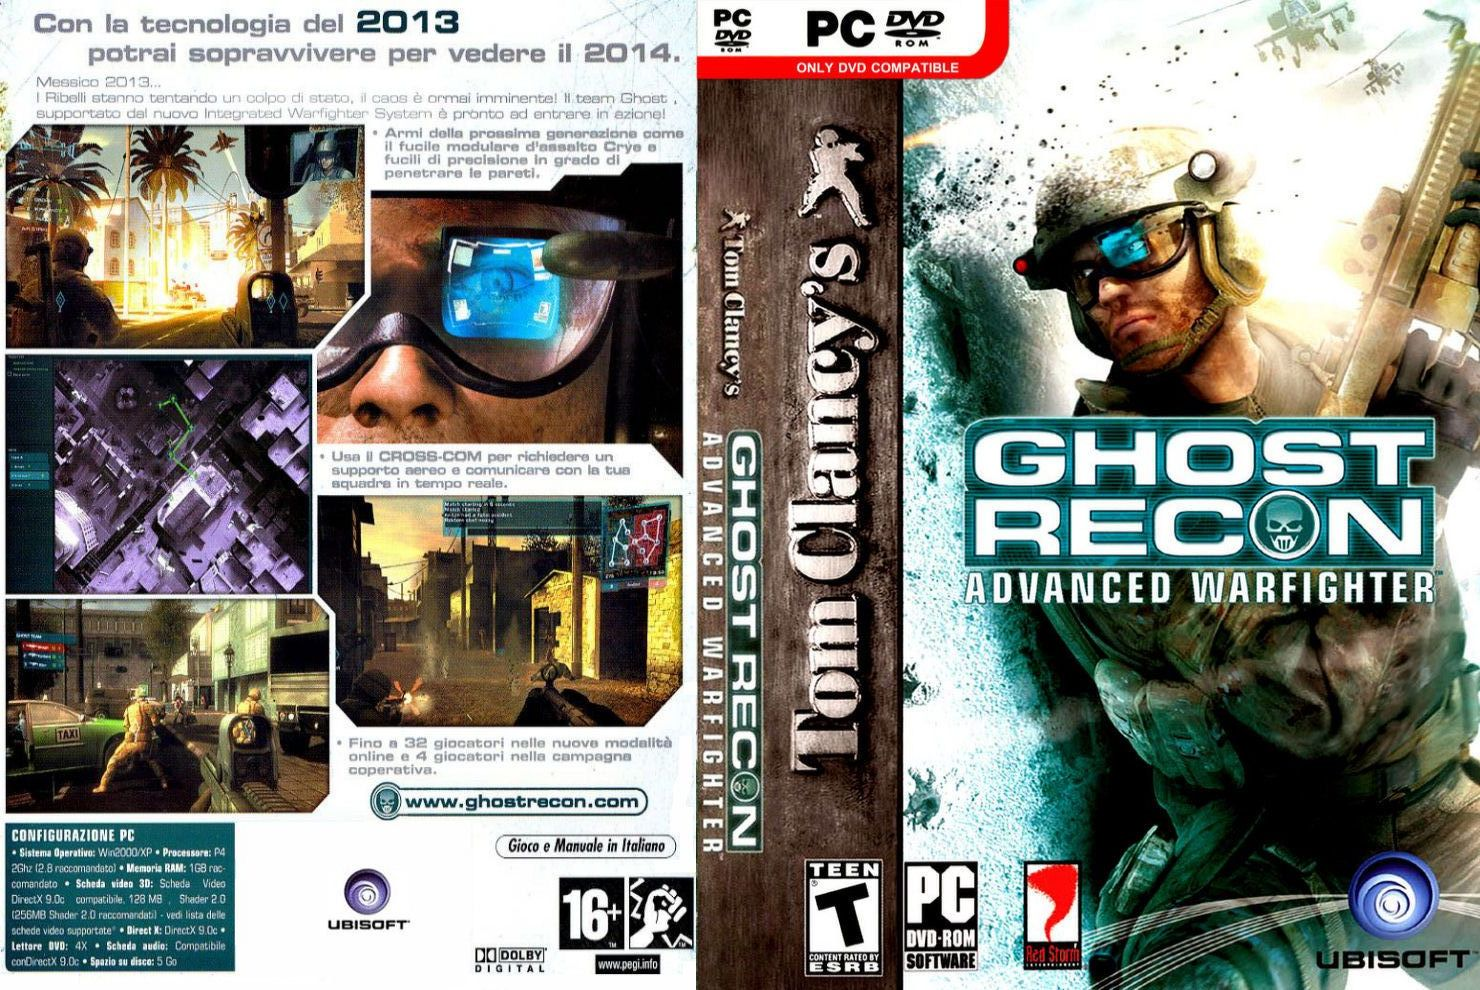 Ghost Recon Advanced Warfighter [1 Link] Ghost_recon_-_advanced_warfighter-front